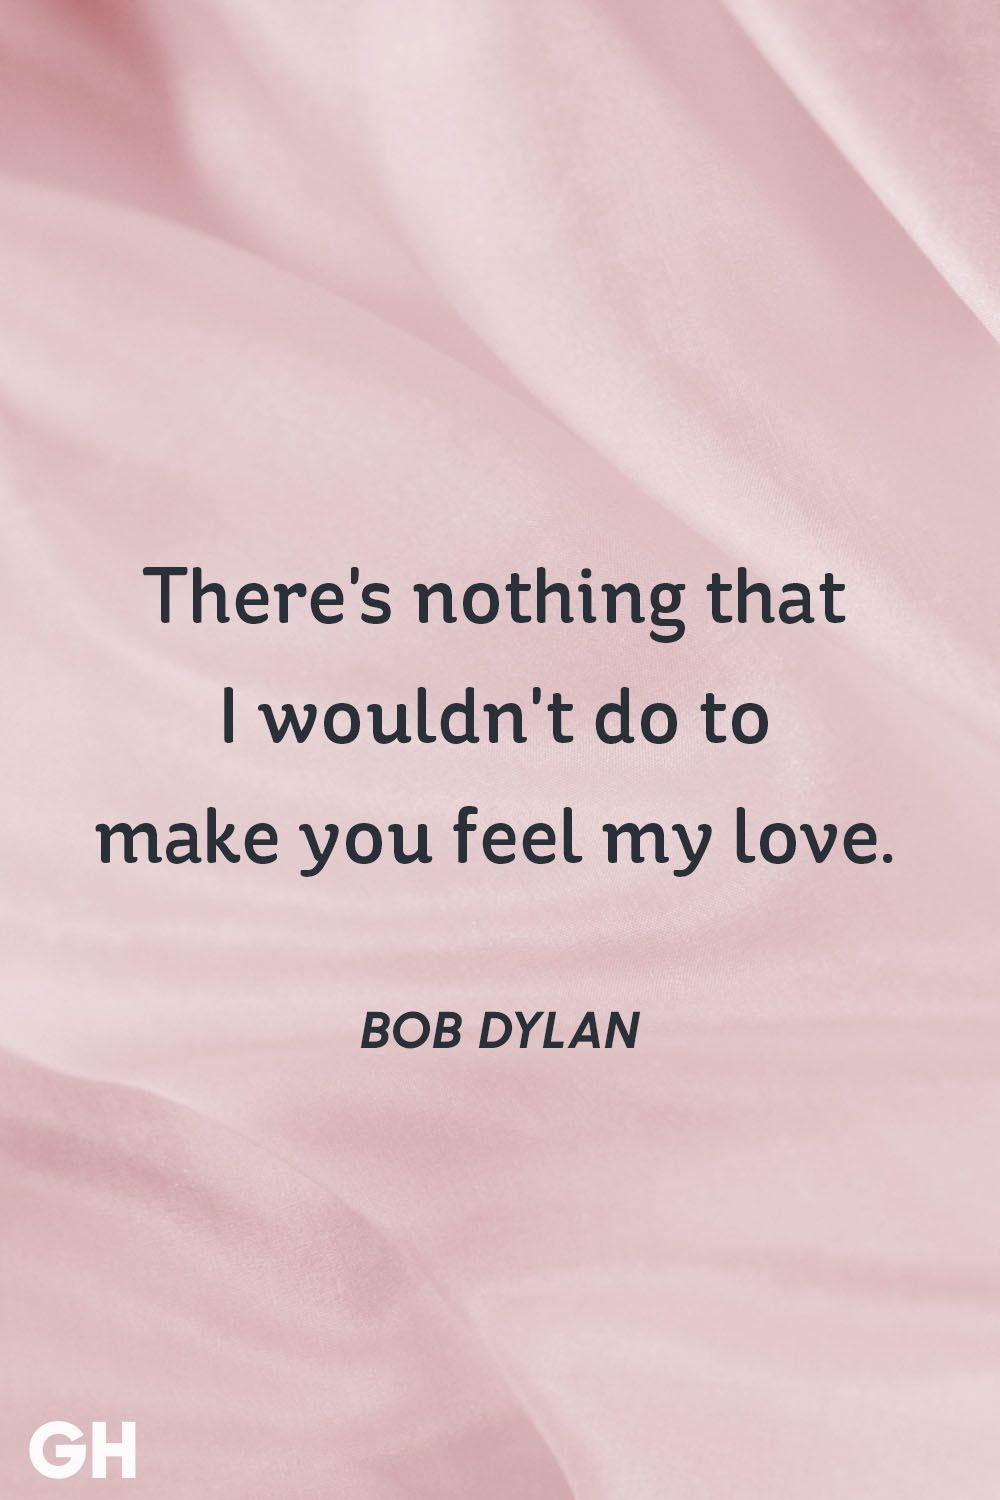 30 Best Love Quotes of All Time - Cute Famous Sayings ...